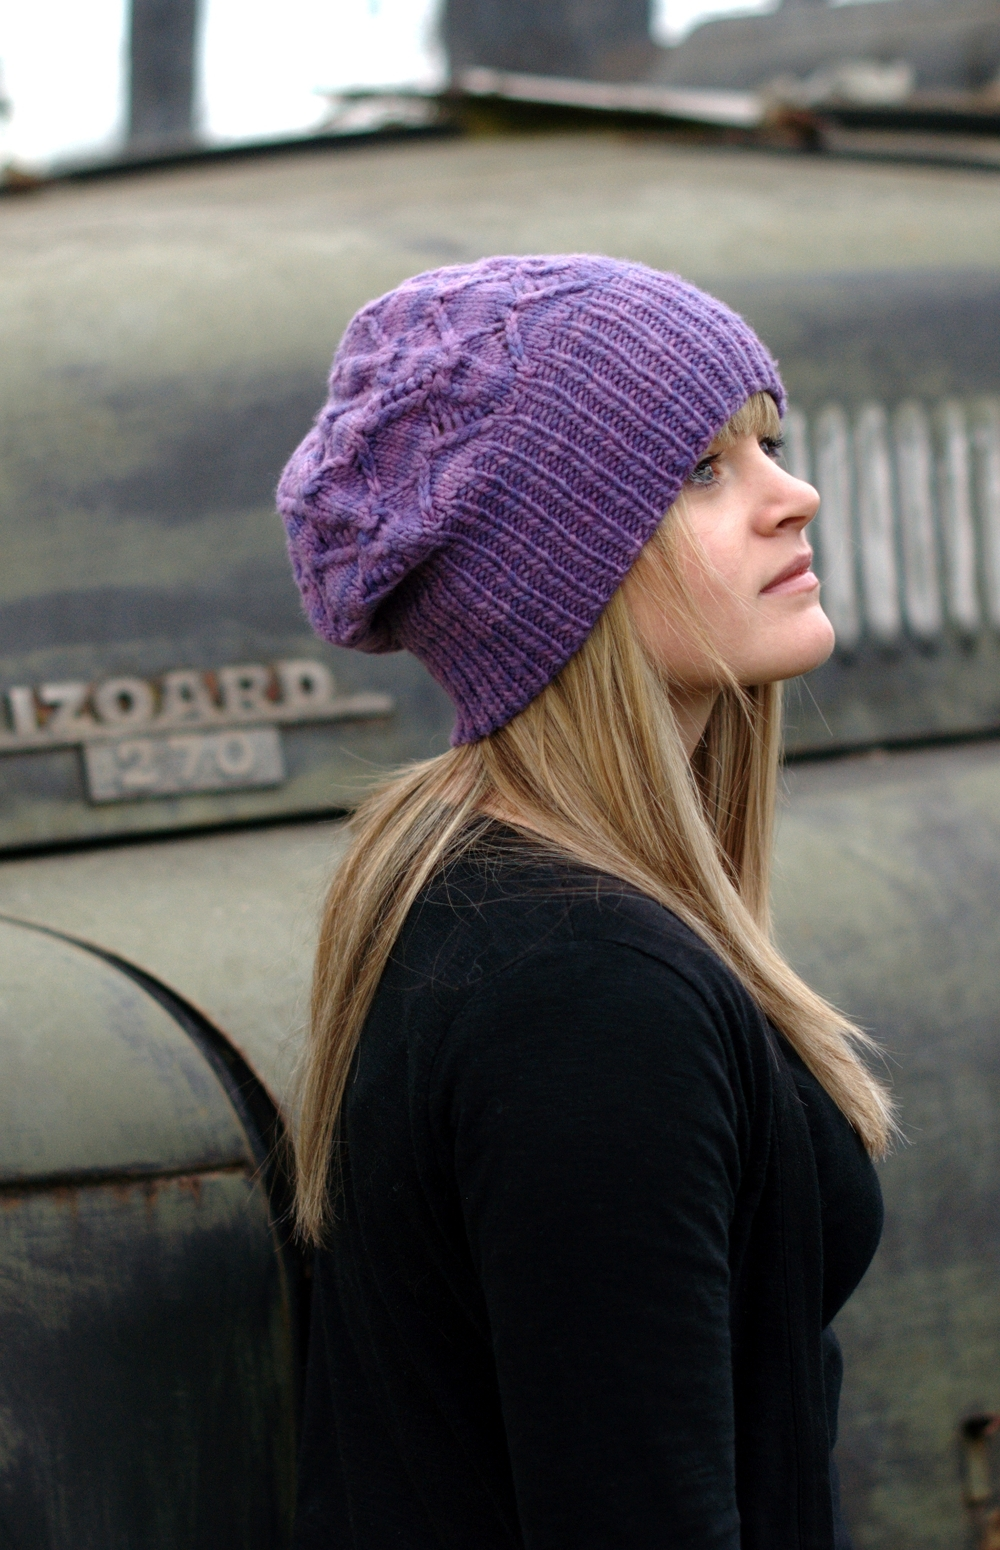 Starburst slouchy lace Hat knitting pattern